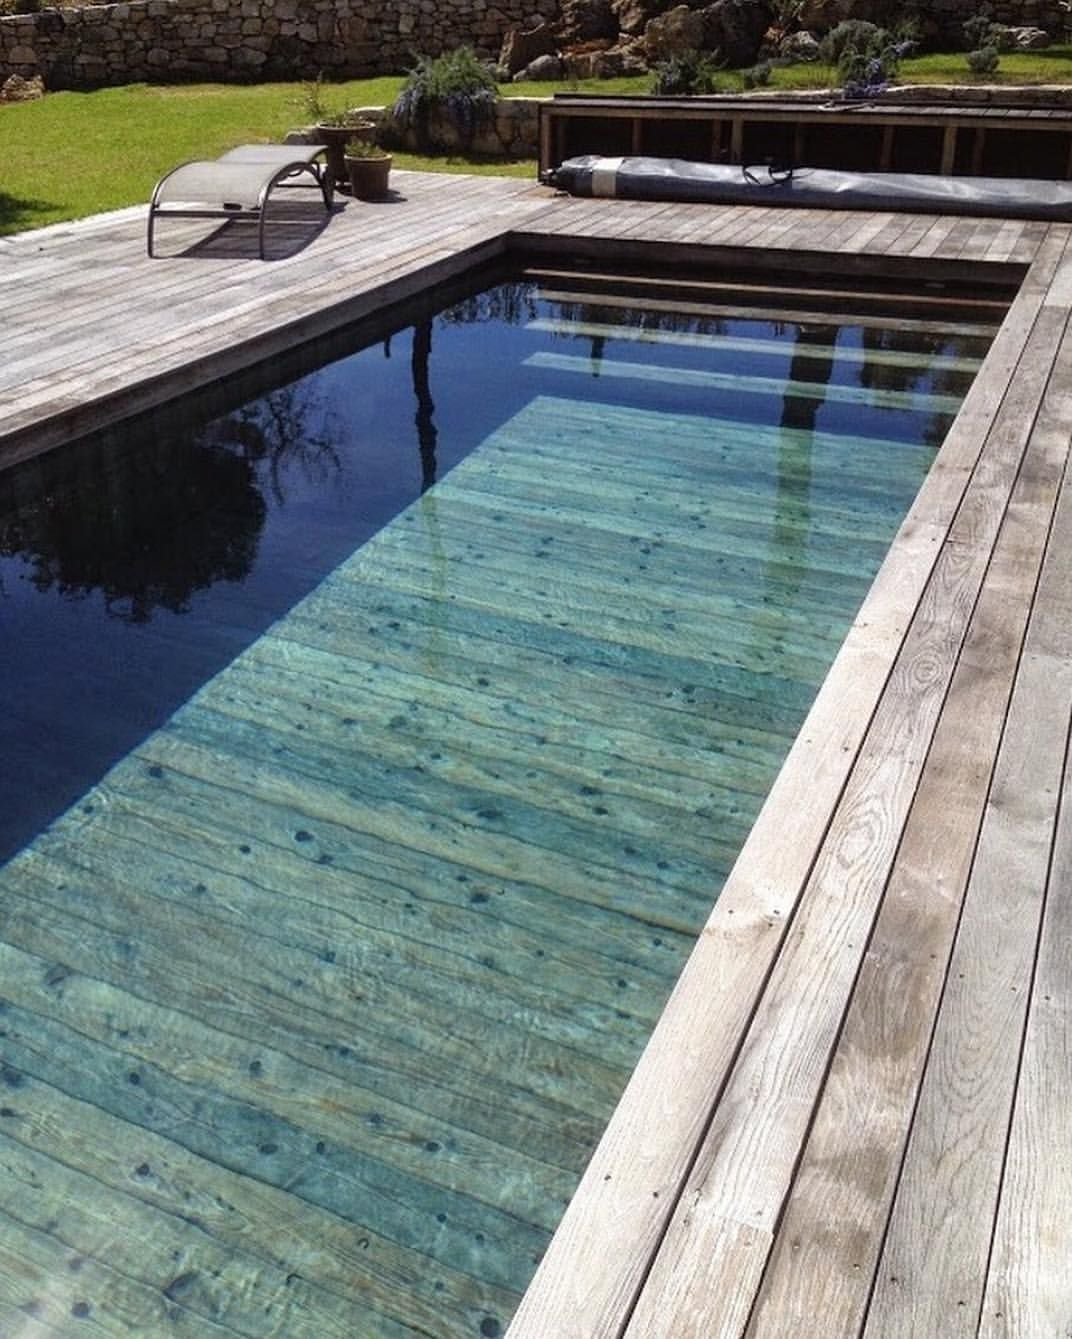 Have You Ever Seen A Wooden Pool With The Rise Of Amazing Wood Texture Tiles We Re Looking At You Earpbros We Can Wooden Pool Pool Houses Diy Swimming Pool